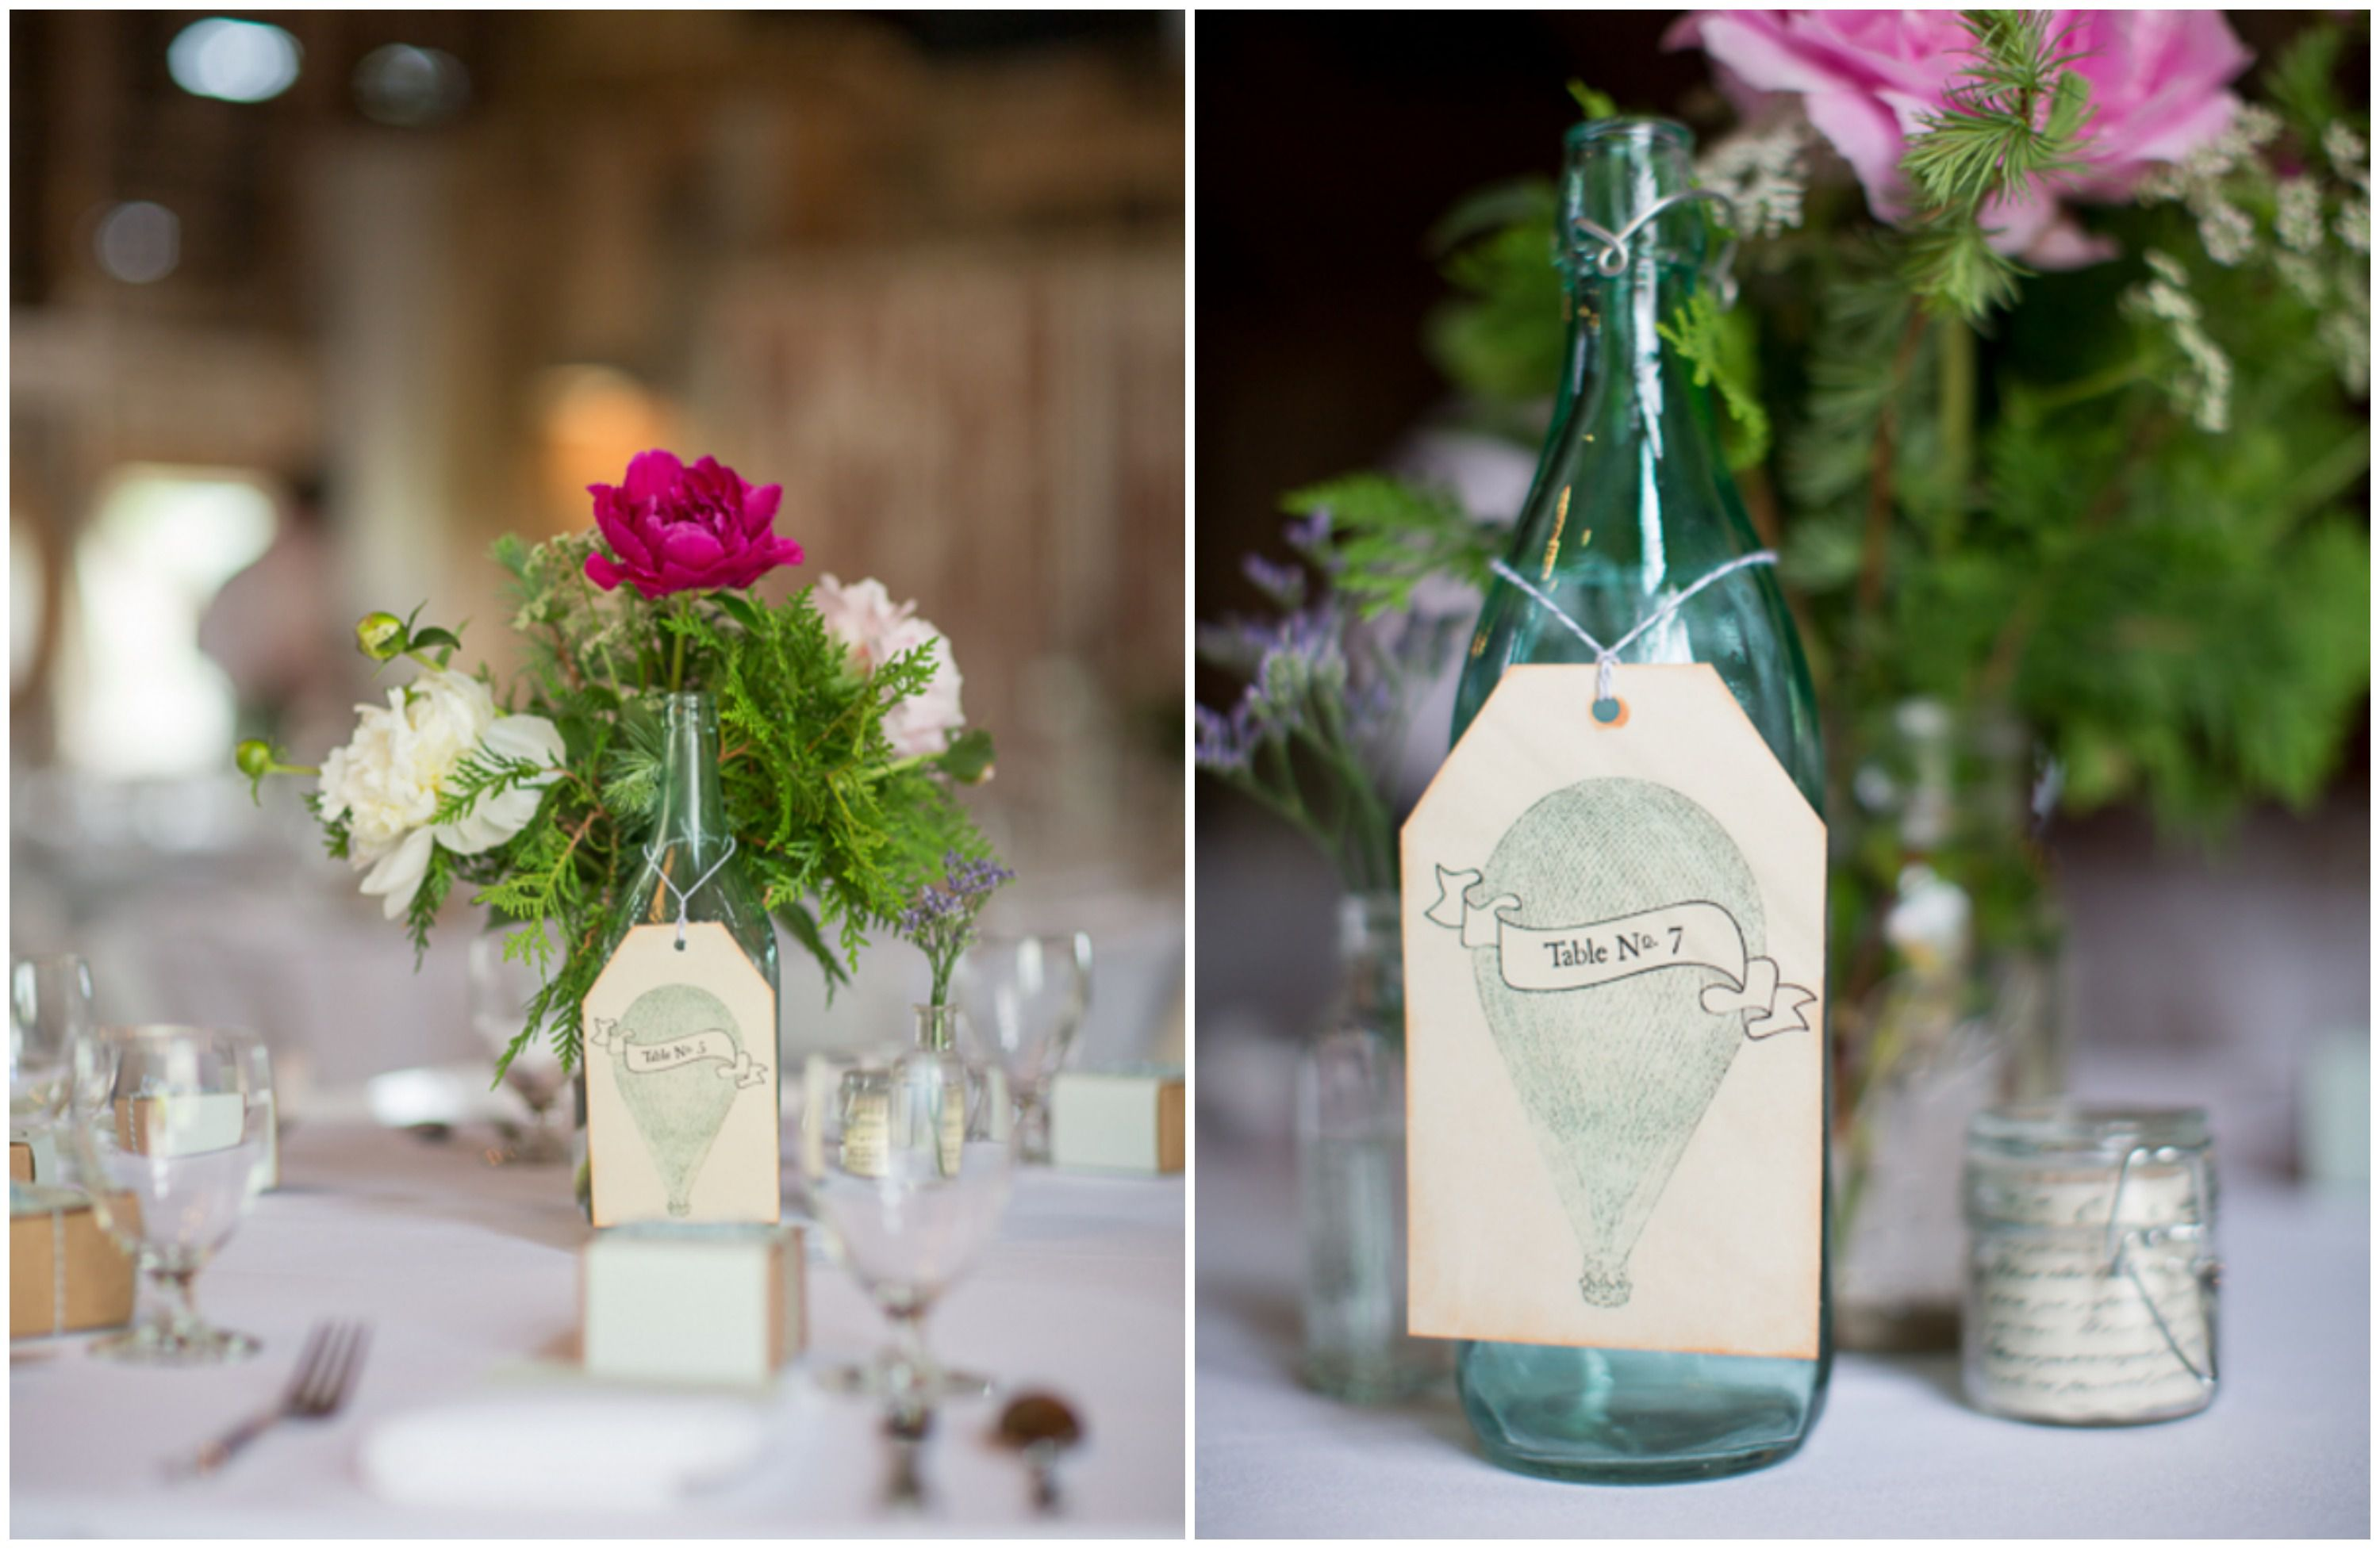 Barn Wedding Centerpiece And Table Numbers Details